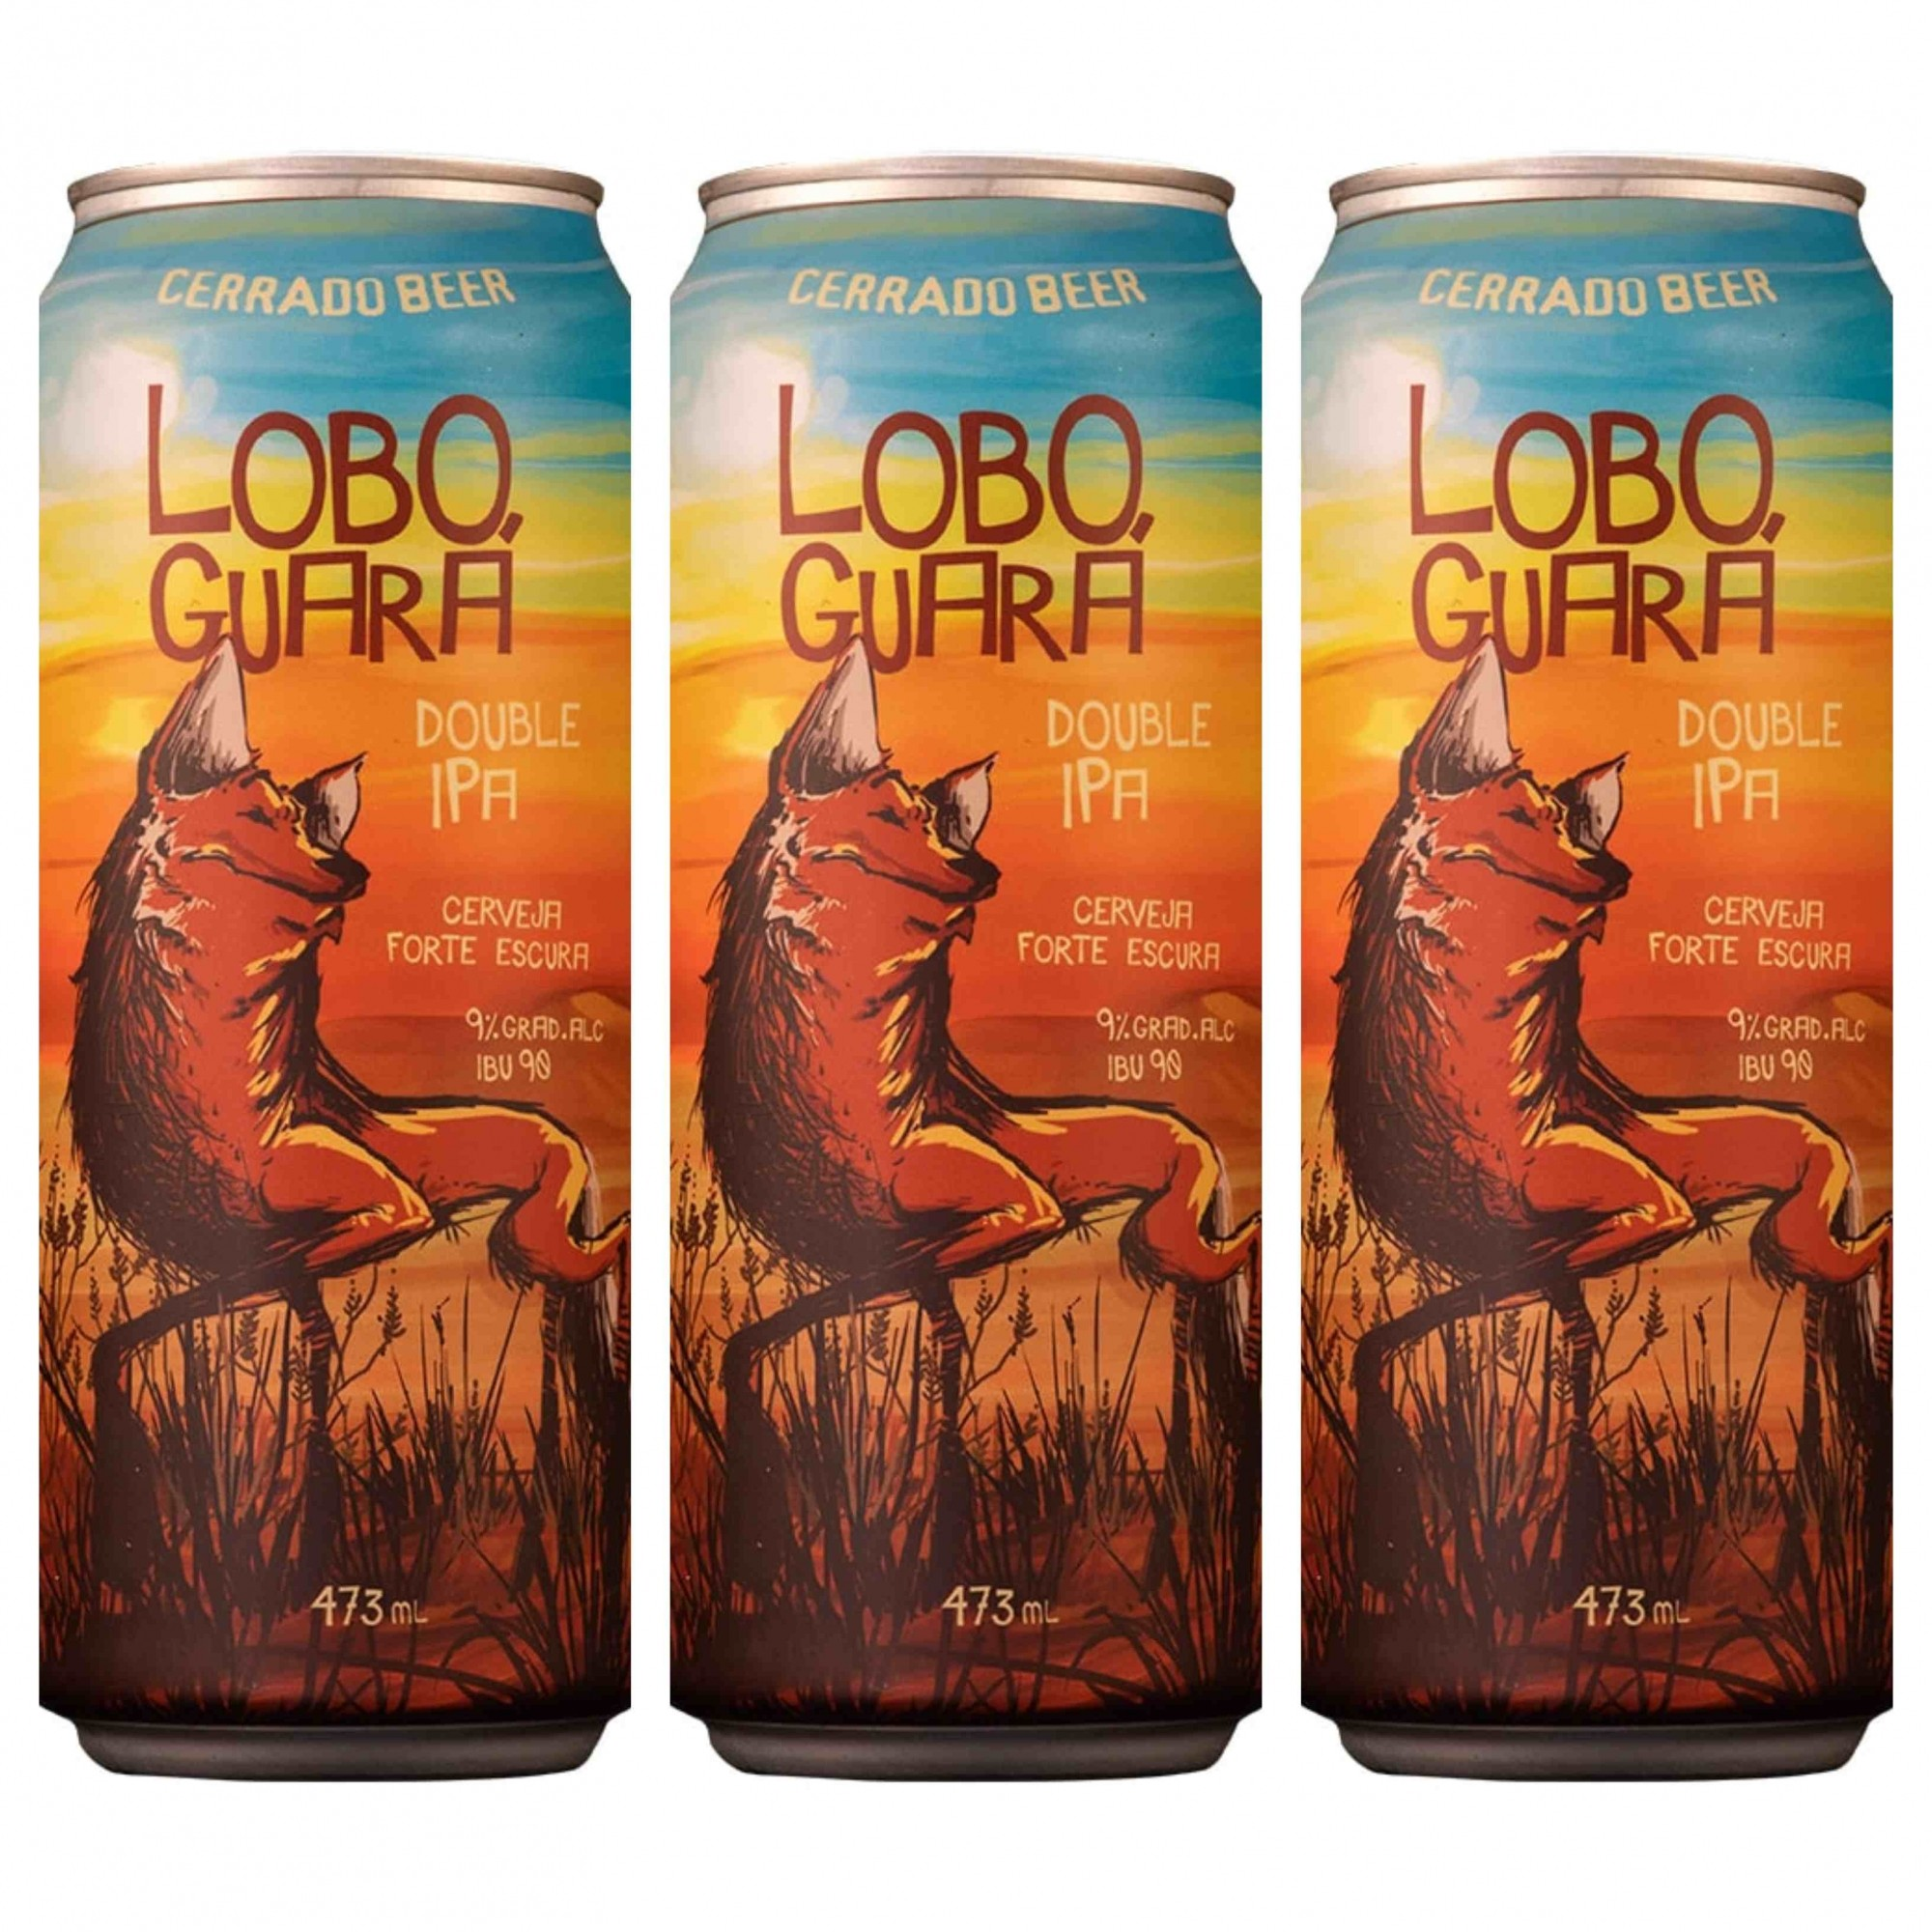 Kit Lobo Guará Double Ipa com 3 latas